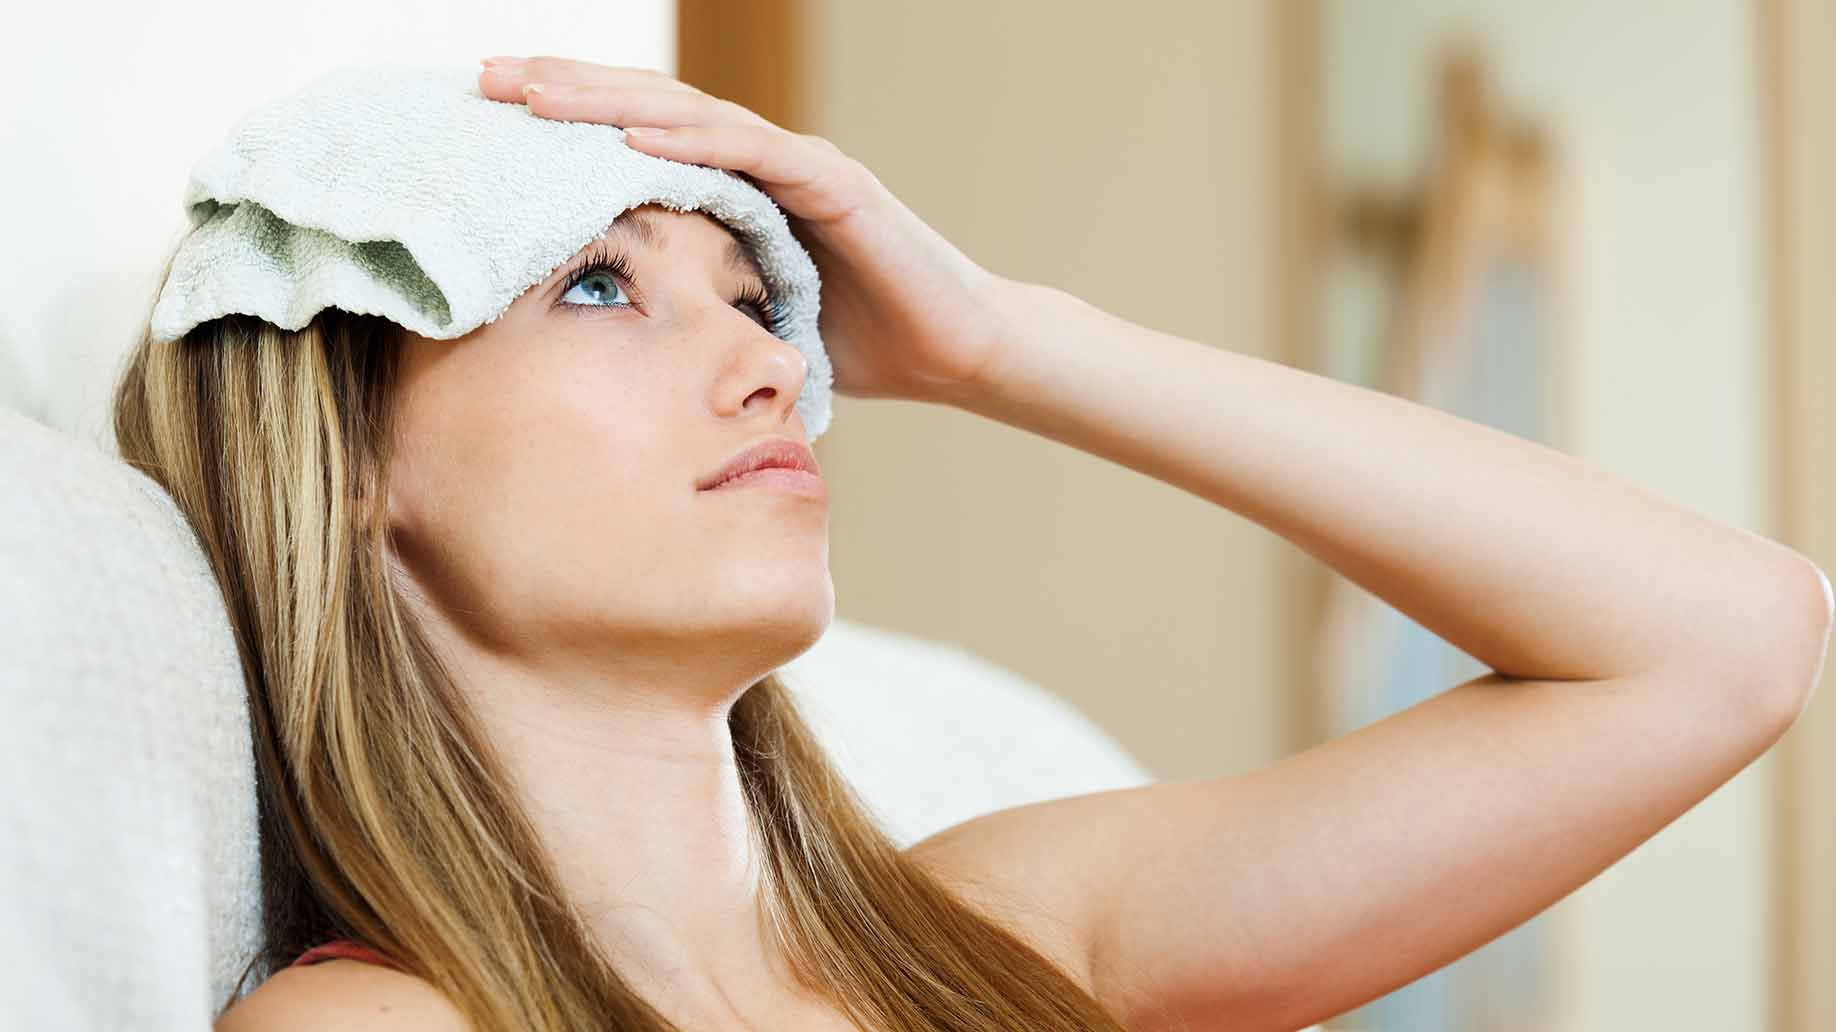 https://www.remediesforme.com/wp-content/uploads/2016/05/warm-hot-cold-compress-wet-towel-forehead-headaches-migraines-natural-remedies.jpg